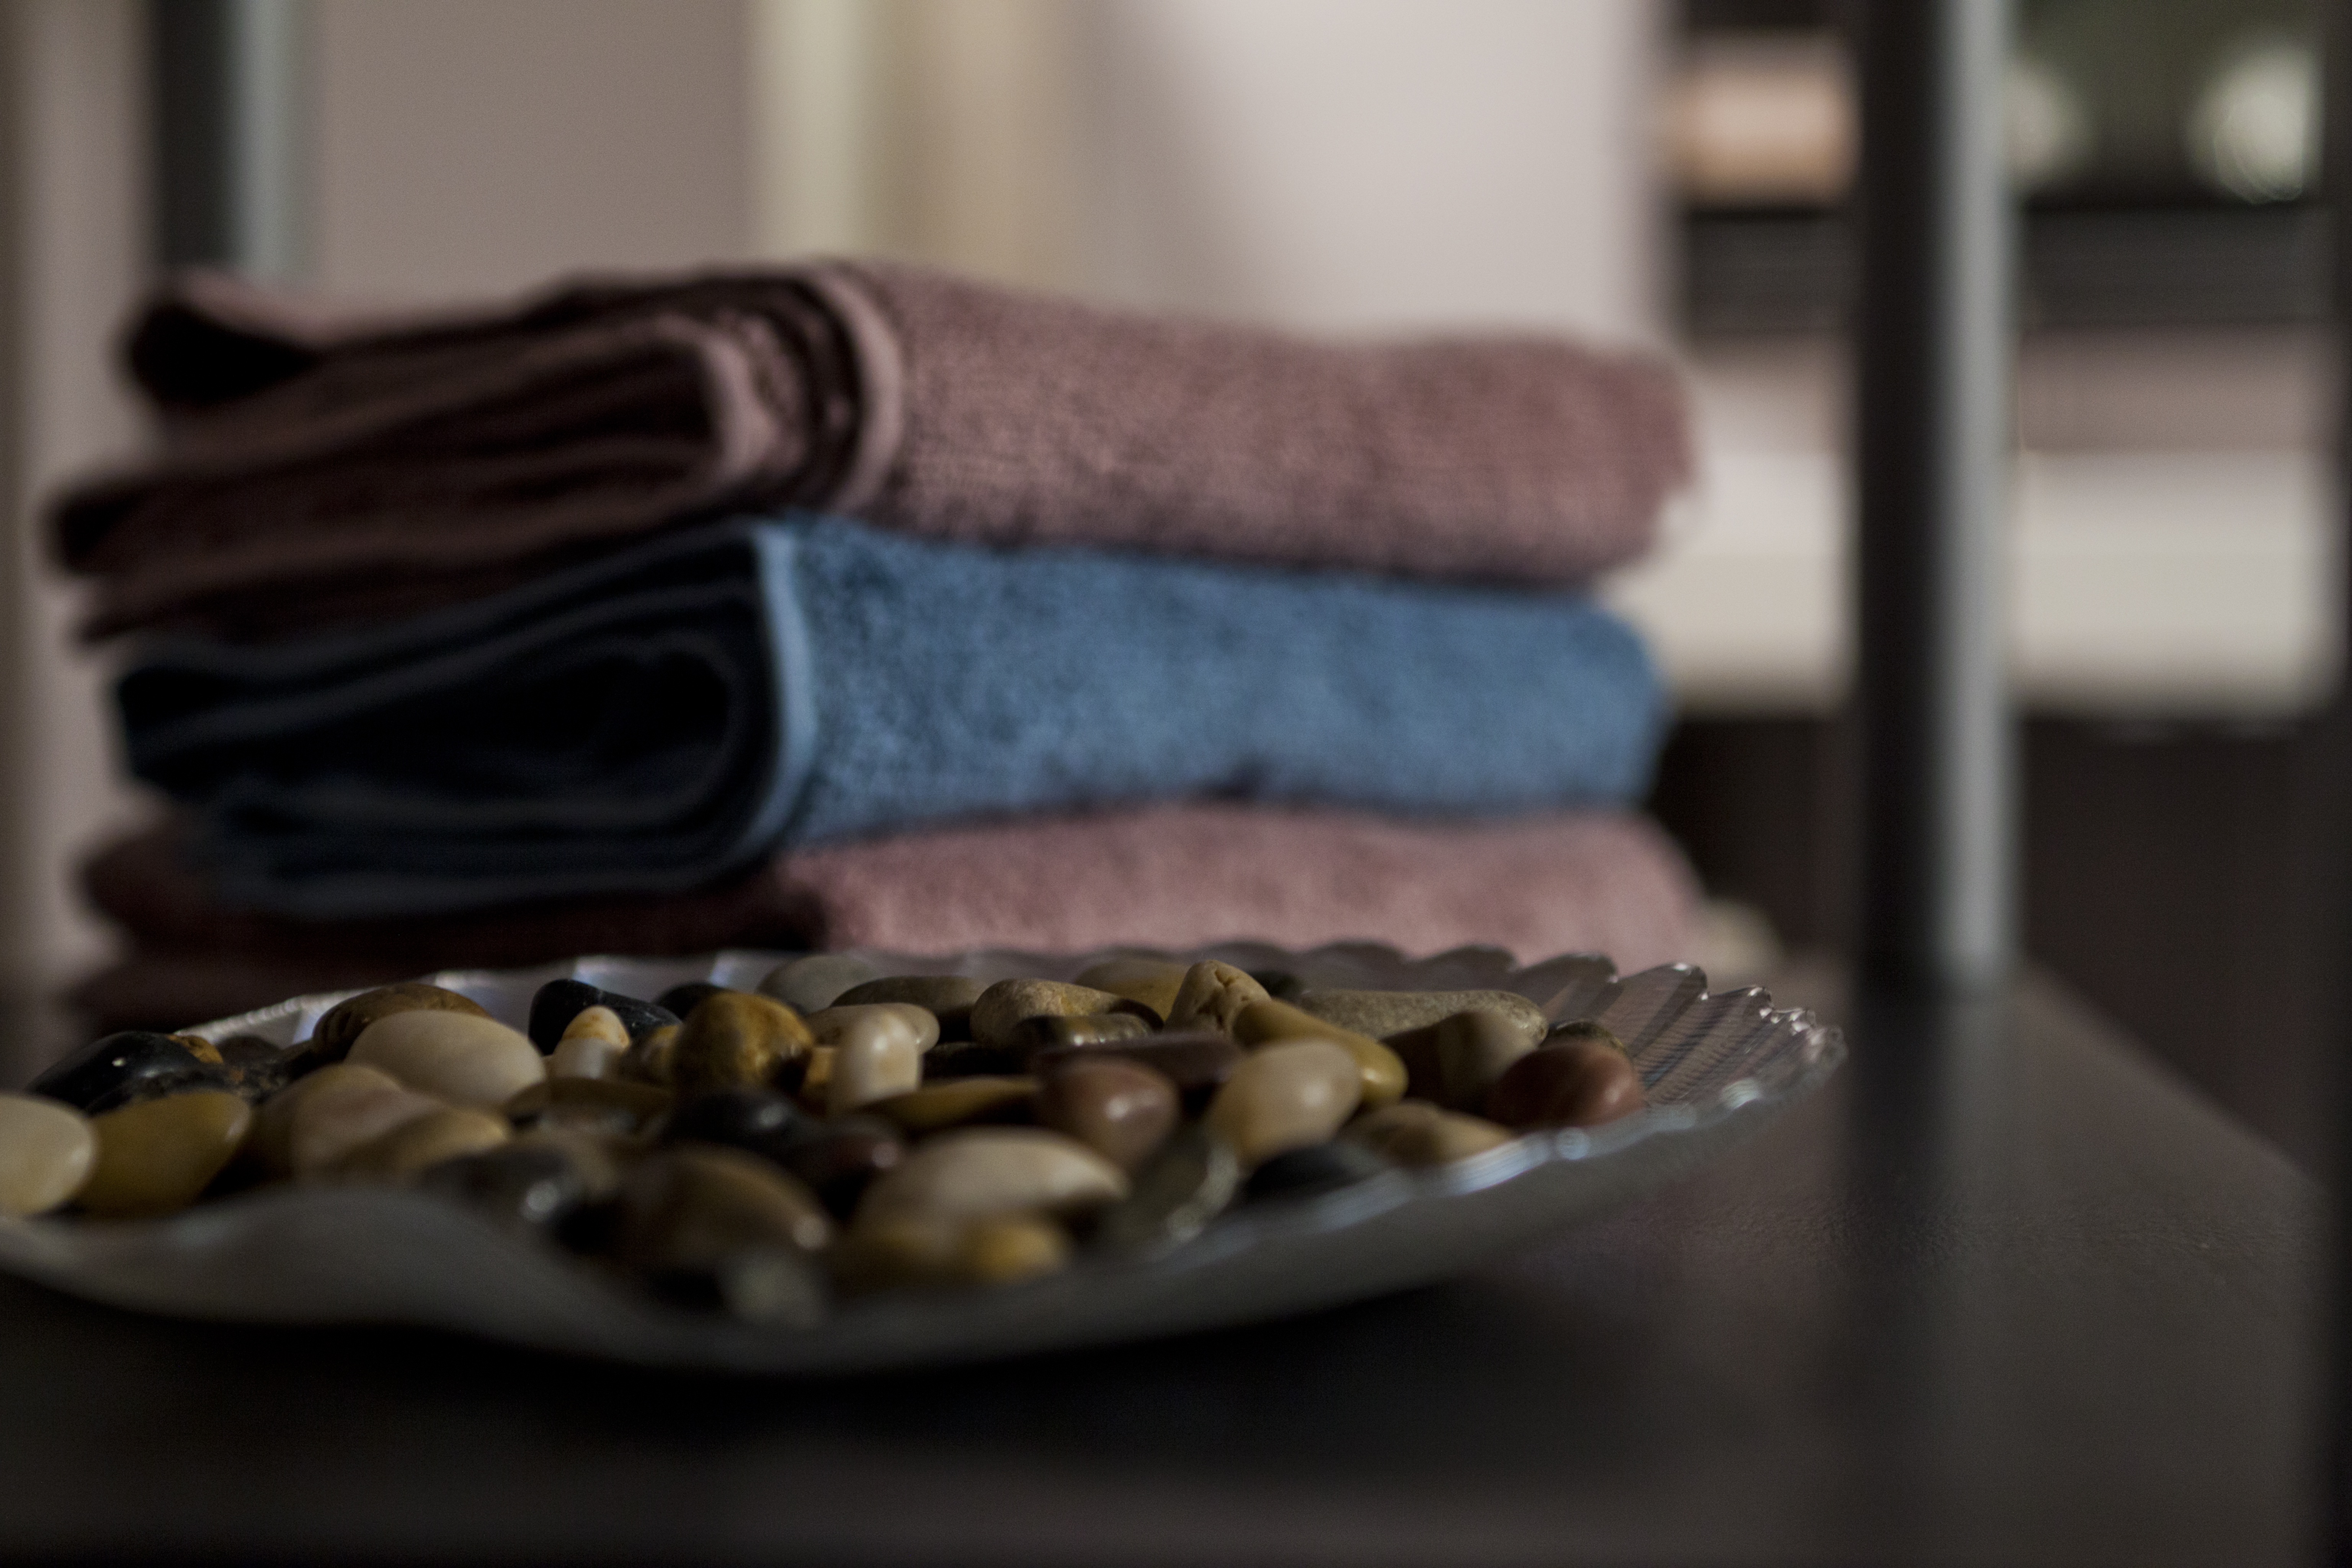 Stacked_Blue_and_Purple_Towels_Tray_Rocks_in_Foreground_IMG_0410_HR_bci.jpg